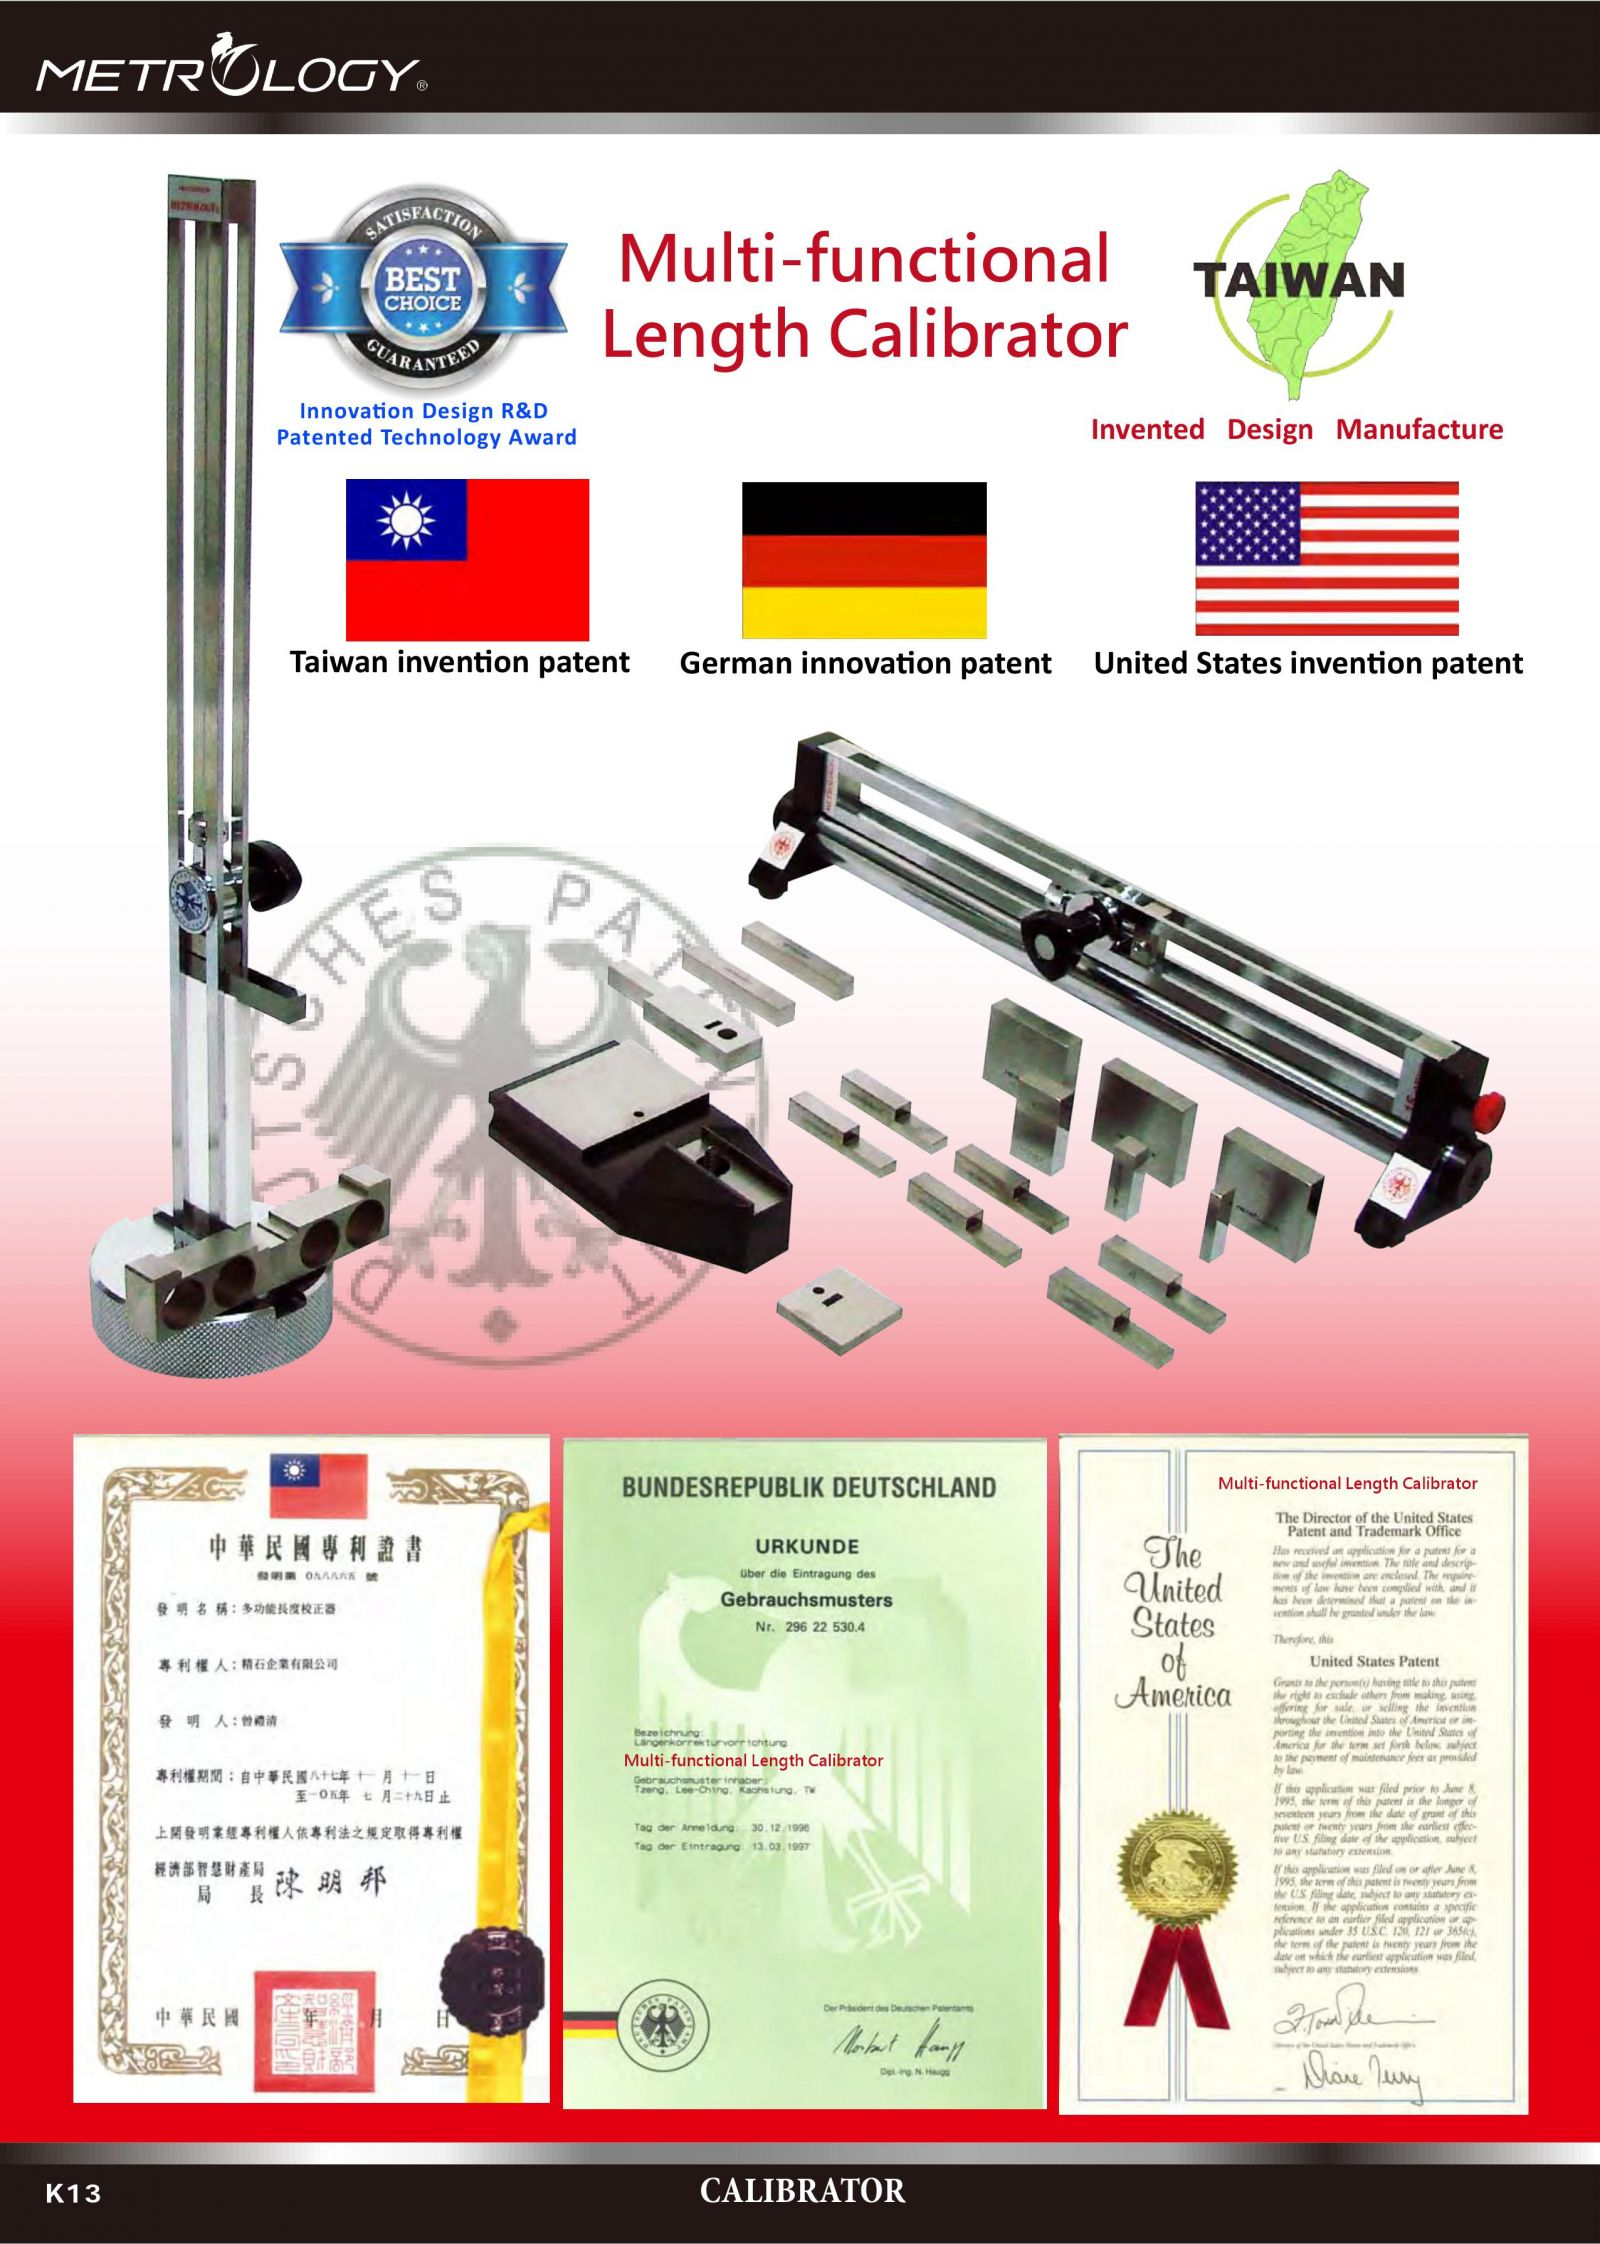 Multi-Functional Length Calibrator Metrology